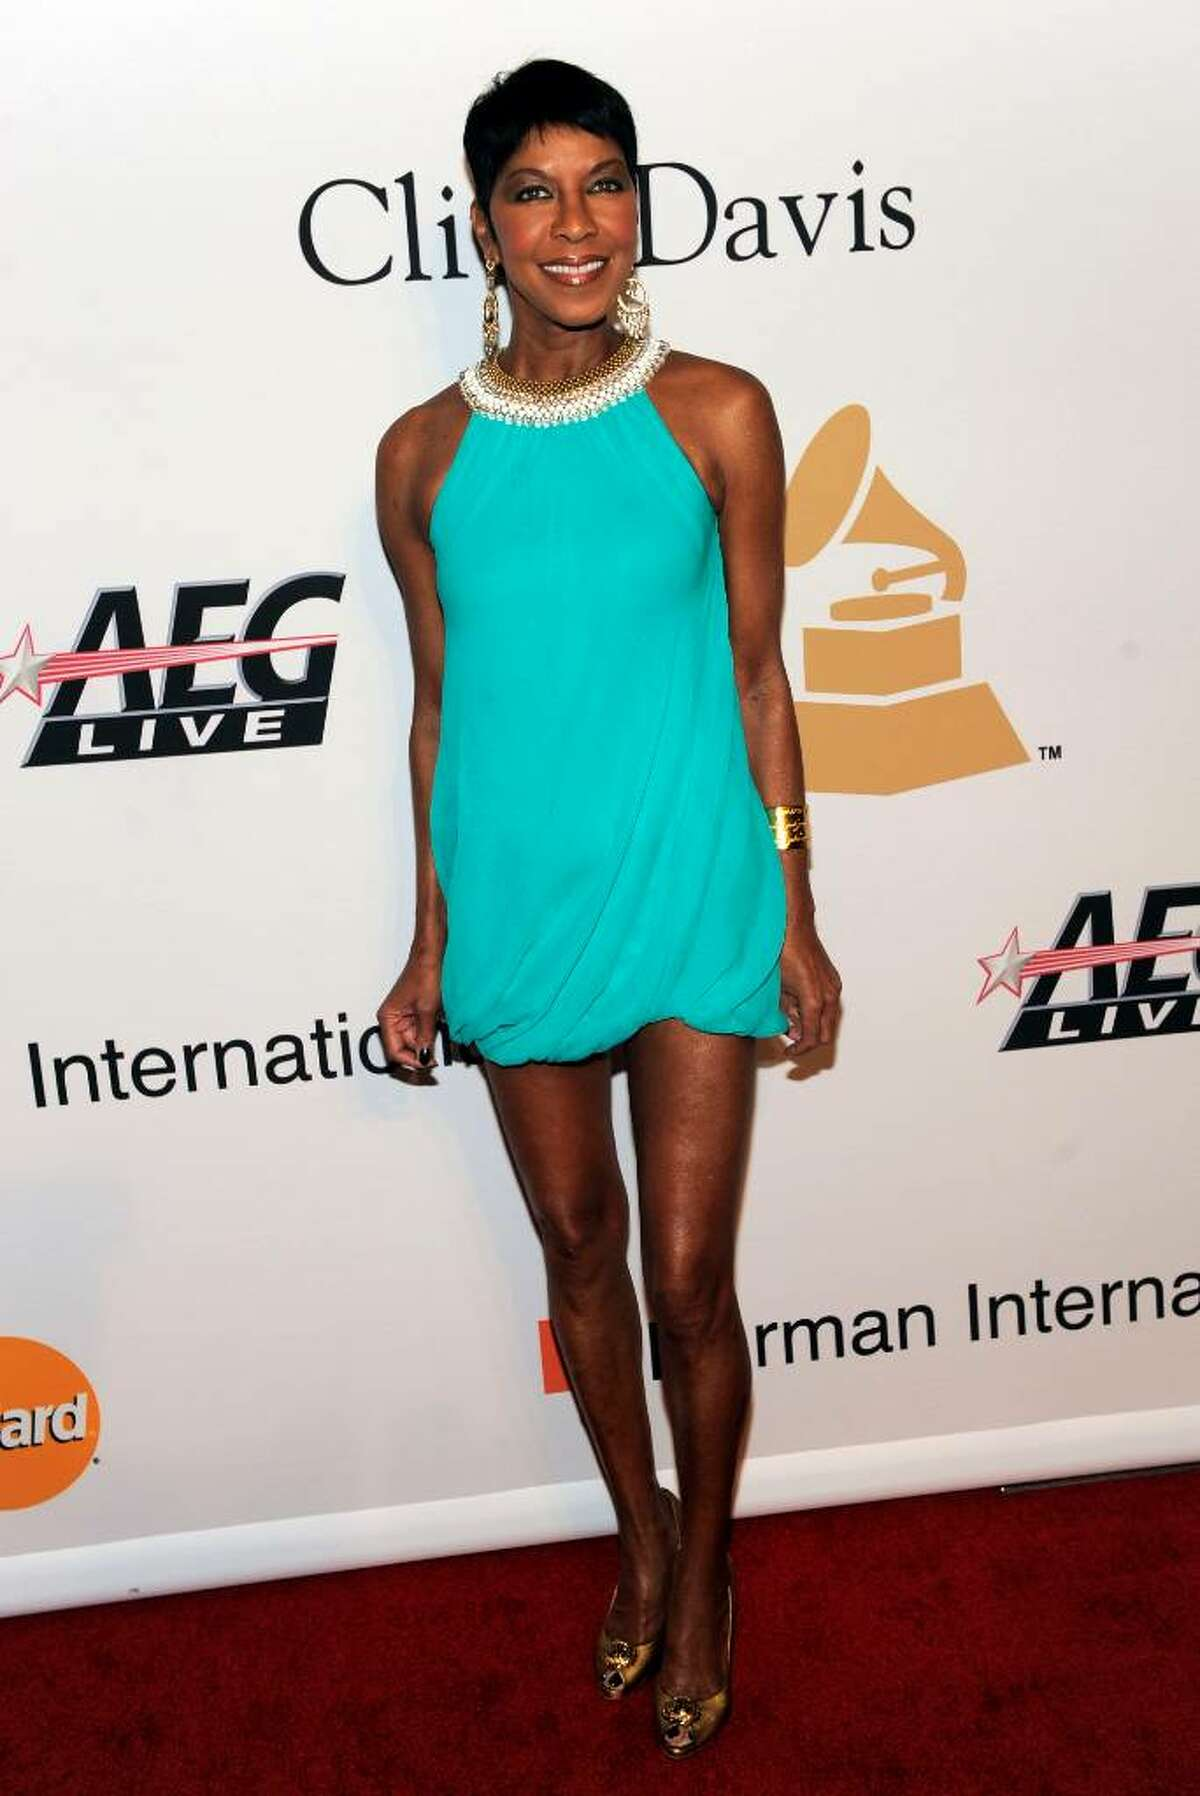 Singer Natalie Cole arrives at the annual Pre-GRAMMY Gala presented by The Recording Academy and Clive Davis on Saturday, Jan. 30, 2010 at The Beverly Hilton Hotel in Beverly, Hills, California. (AP Photo/Chris Pizzello)